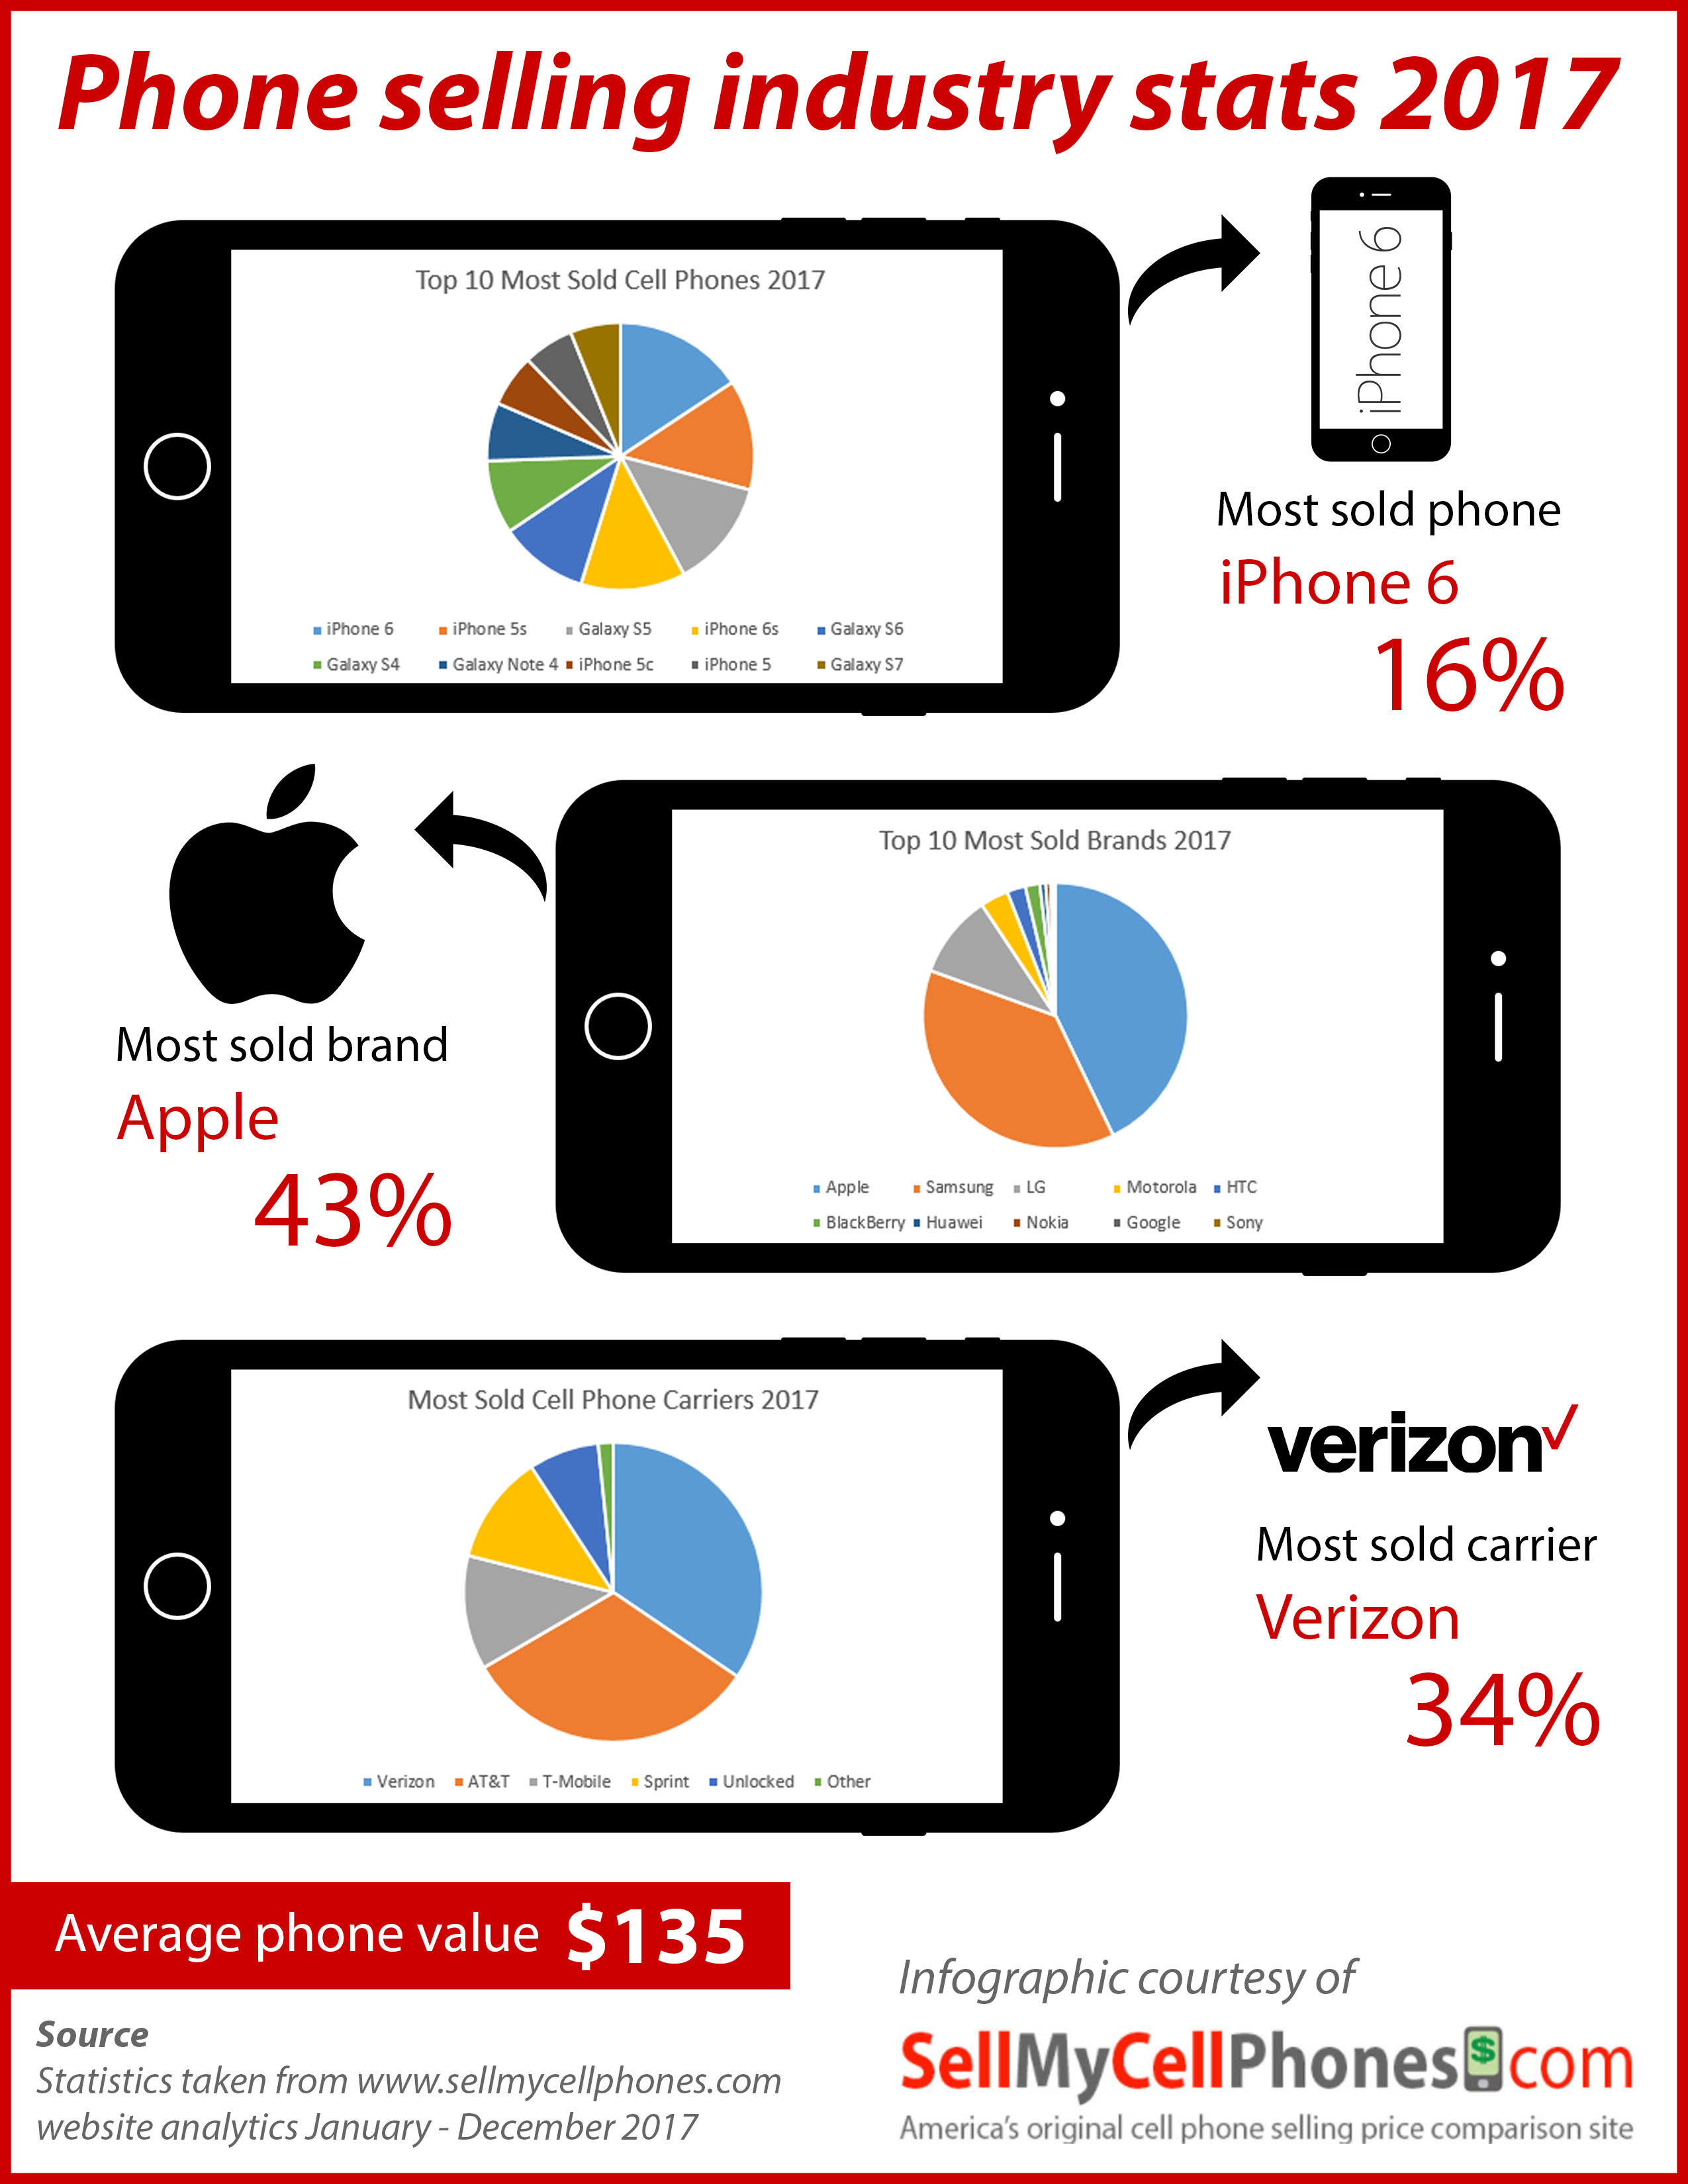 Phone selling stats 2017 infographic